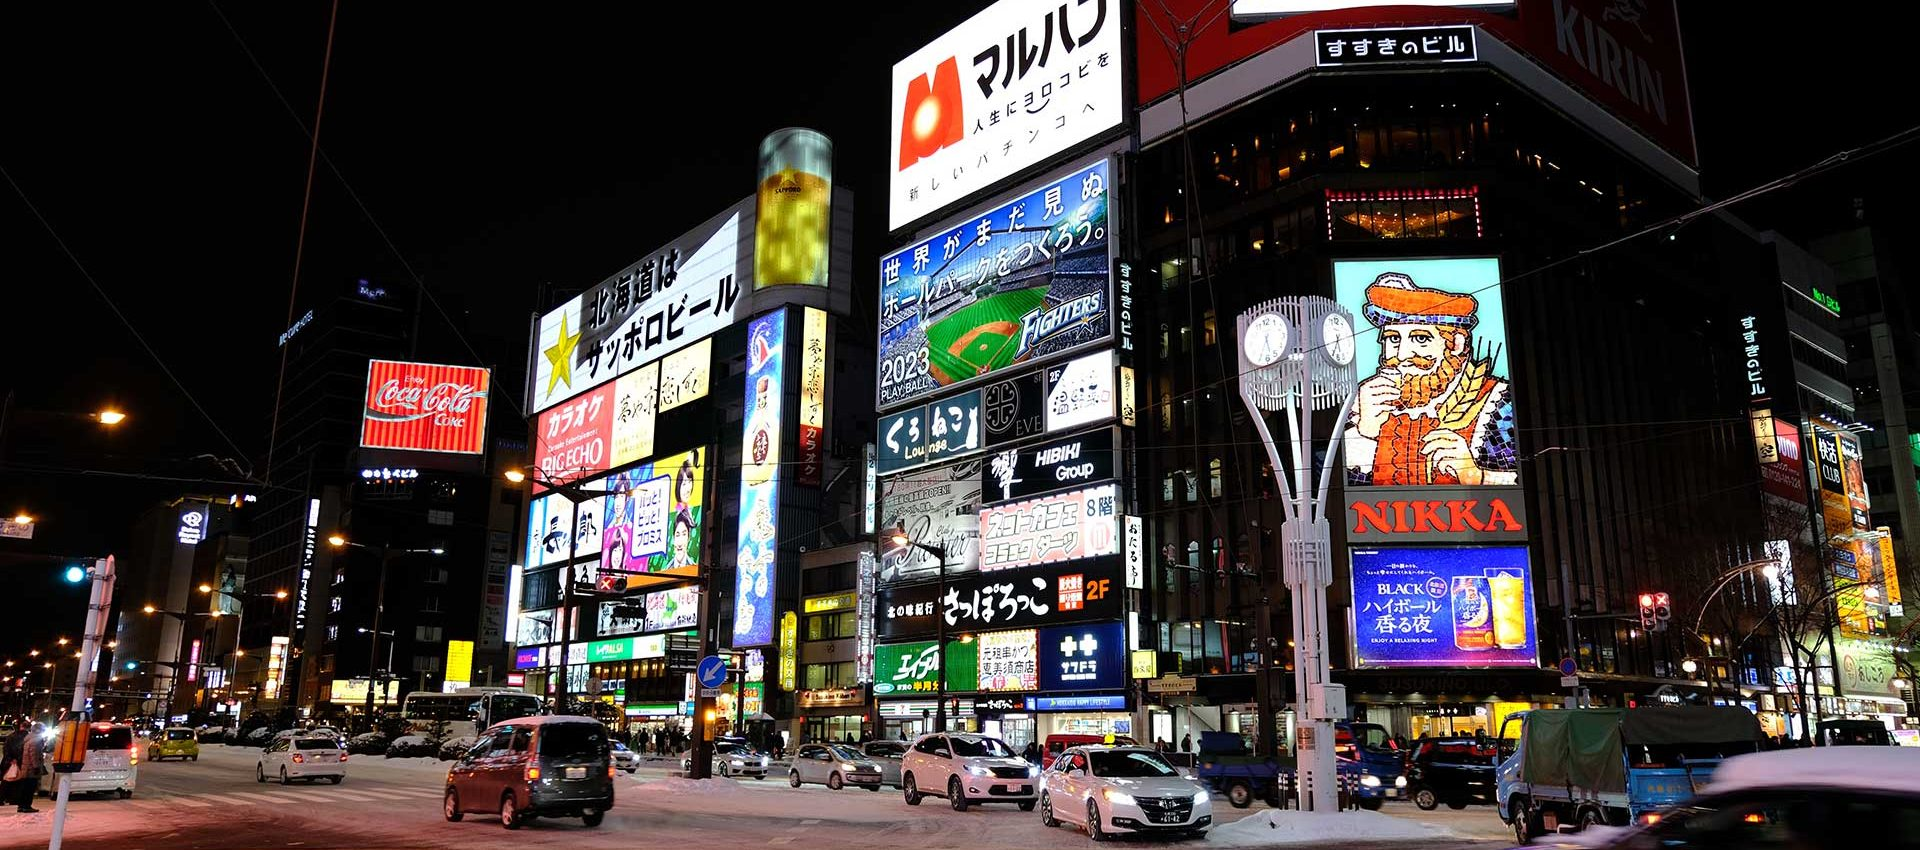 Sapporo is the biggest city of the northern island with unique nightlife and gastronomy.